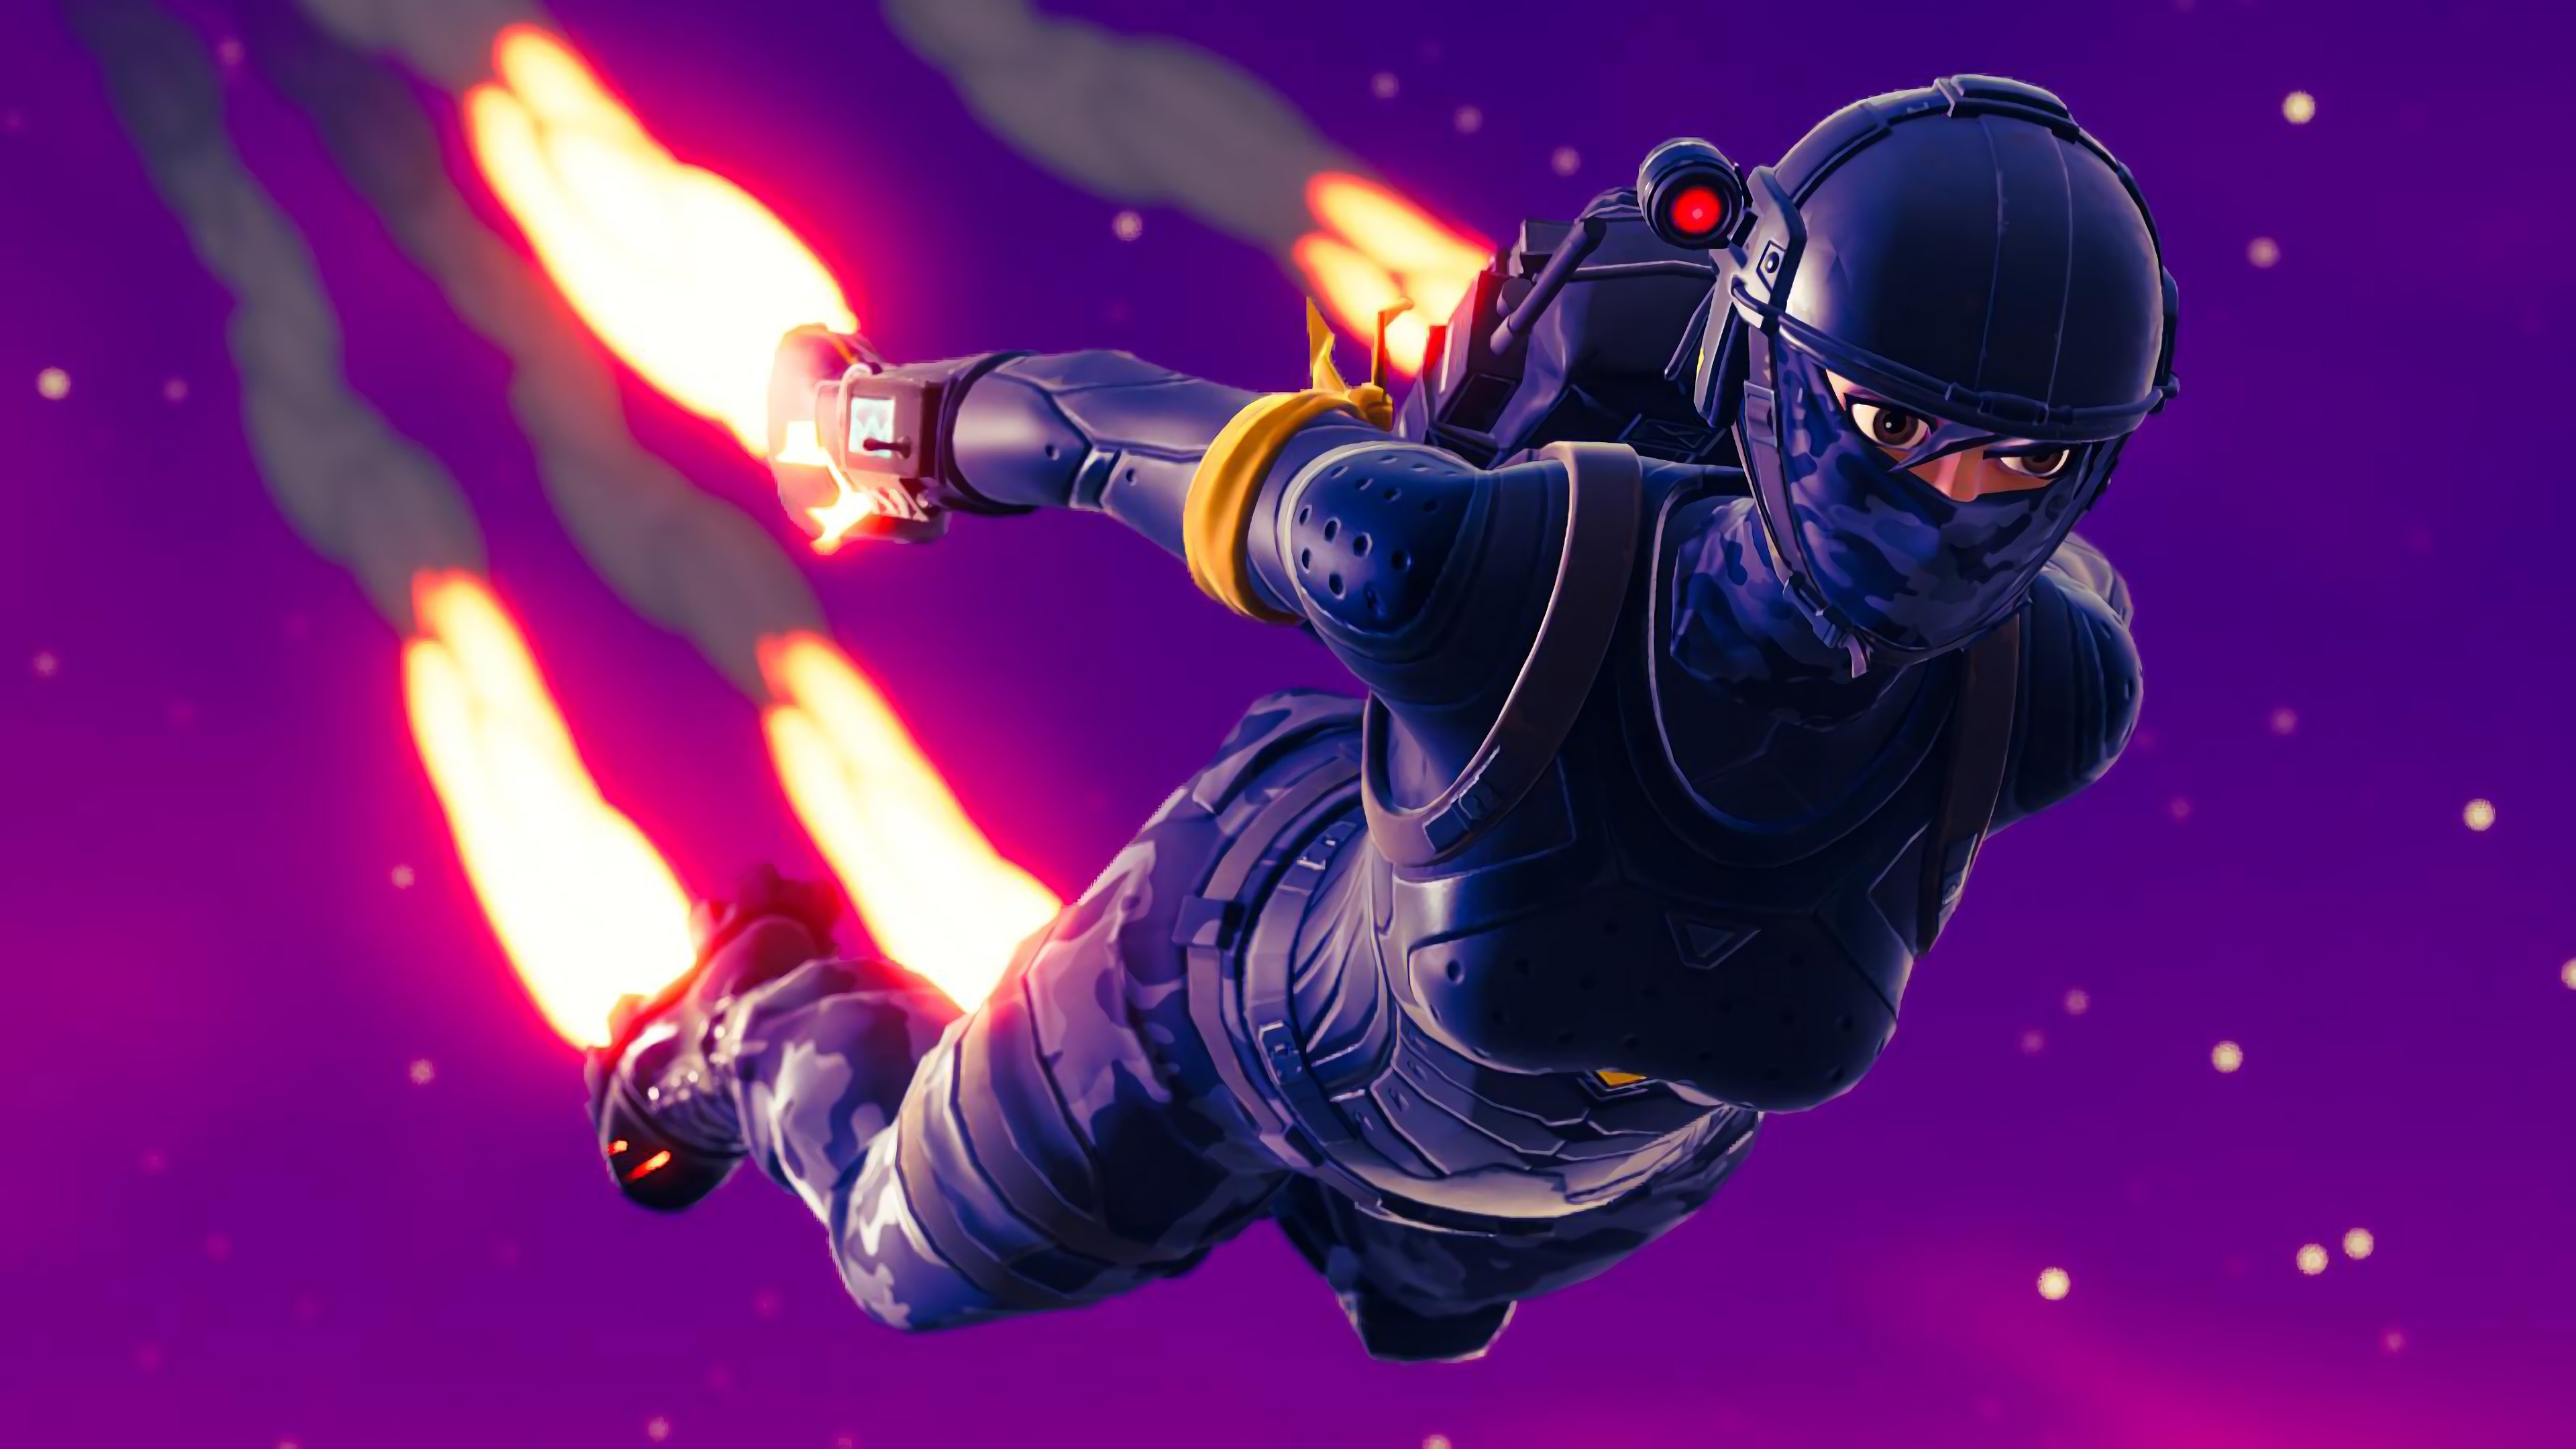 Ios Wallpaper Iphone X Обои Фортнайт Fortnite Screenshot 4k Игры 19508